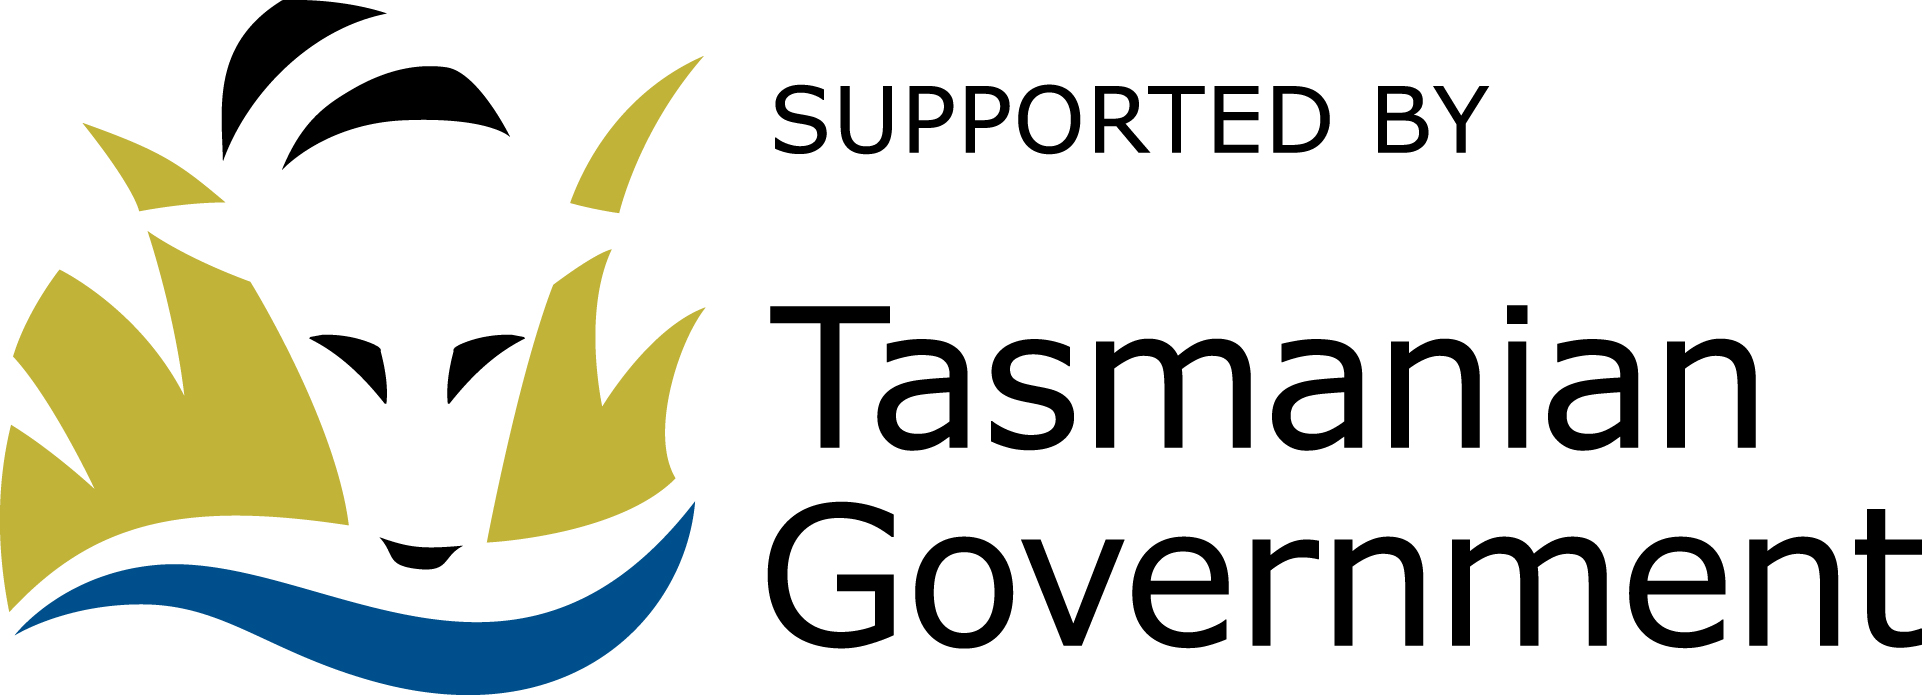 100079 Tas Gov Support rgb hor